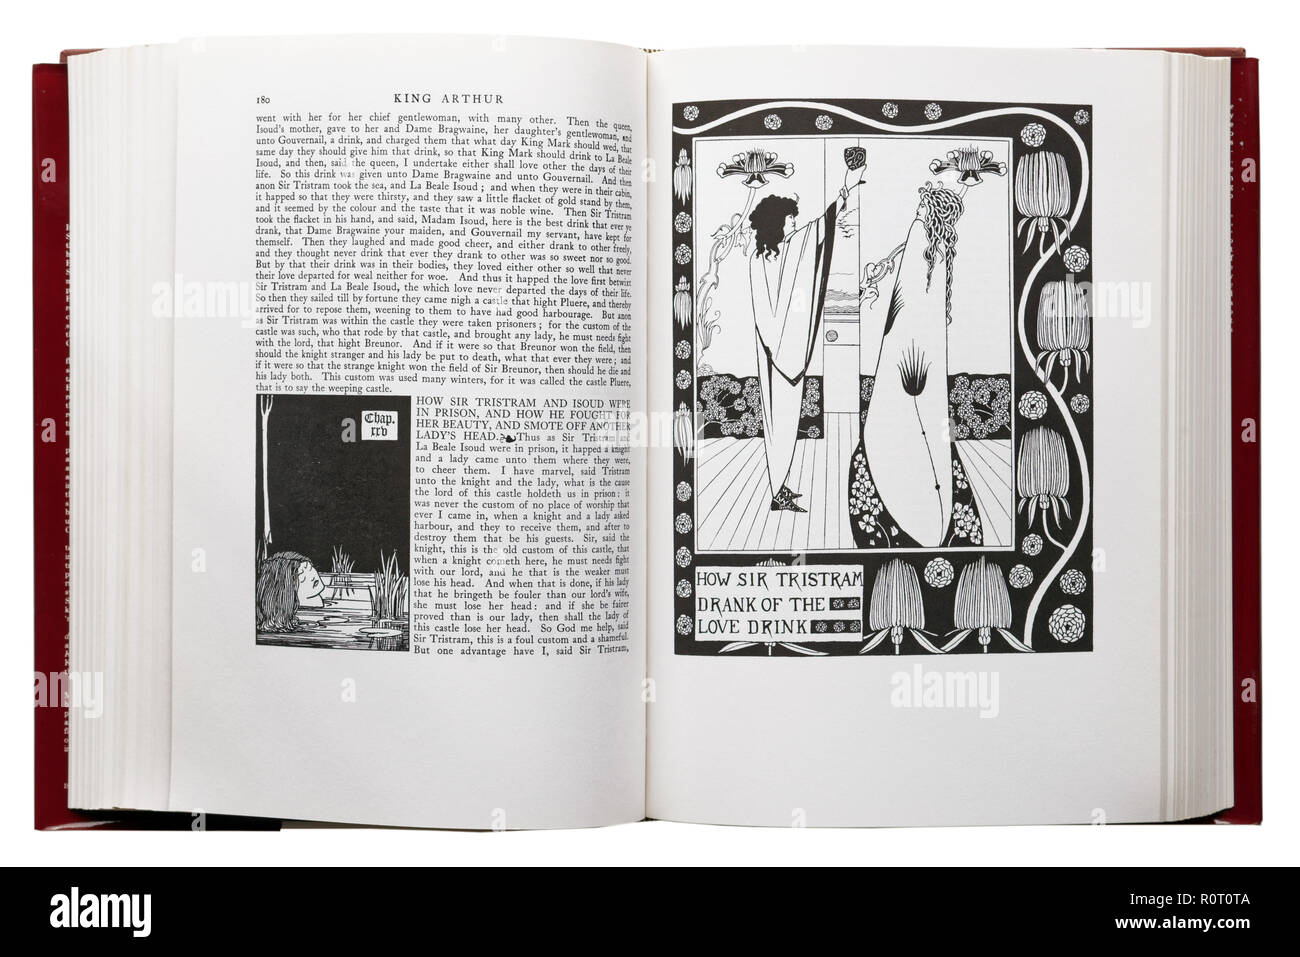 Le Morte d'Arthur by Sir Thomas Malory. Illustration How SIr Tristram Drank of the Love Drink  by Aubrey Beardsley - Stock Image